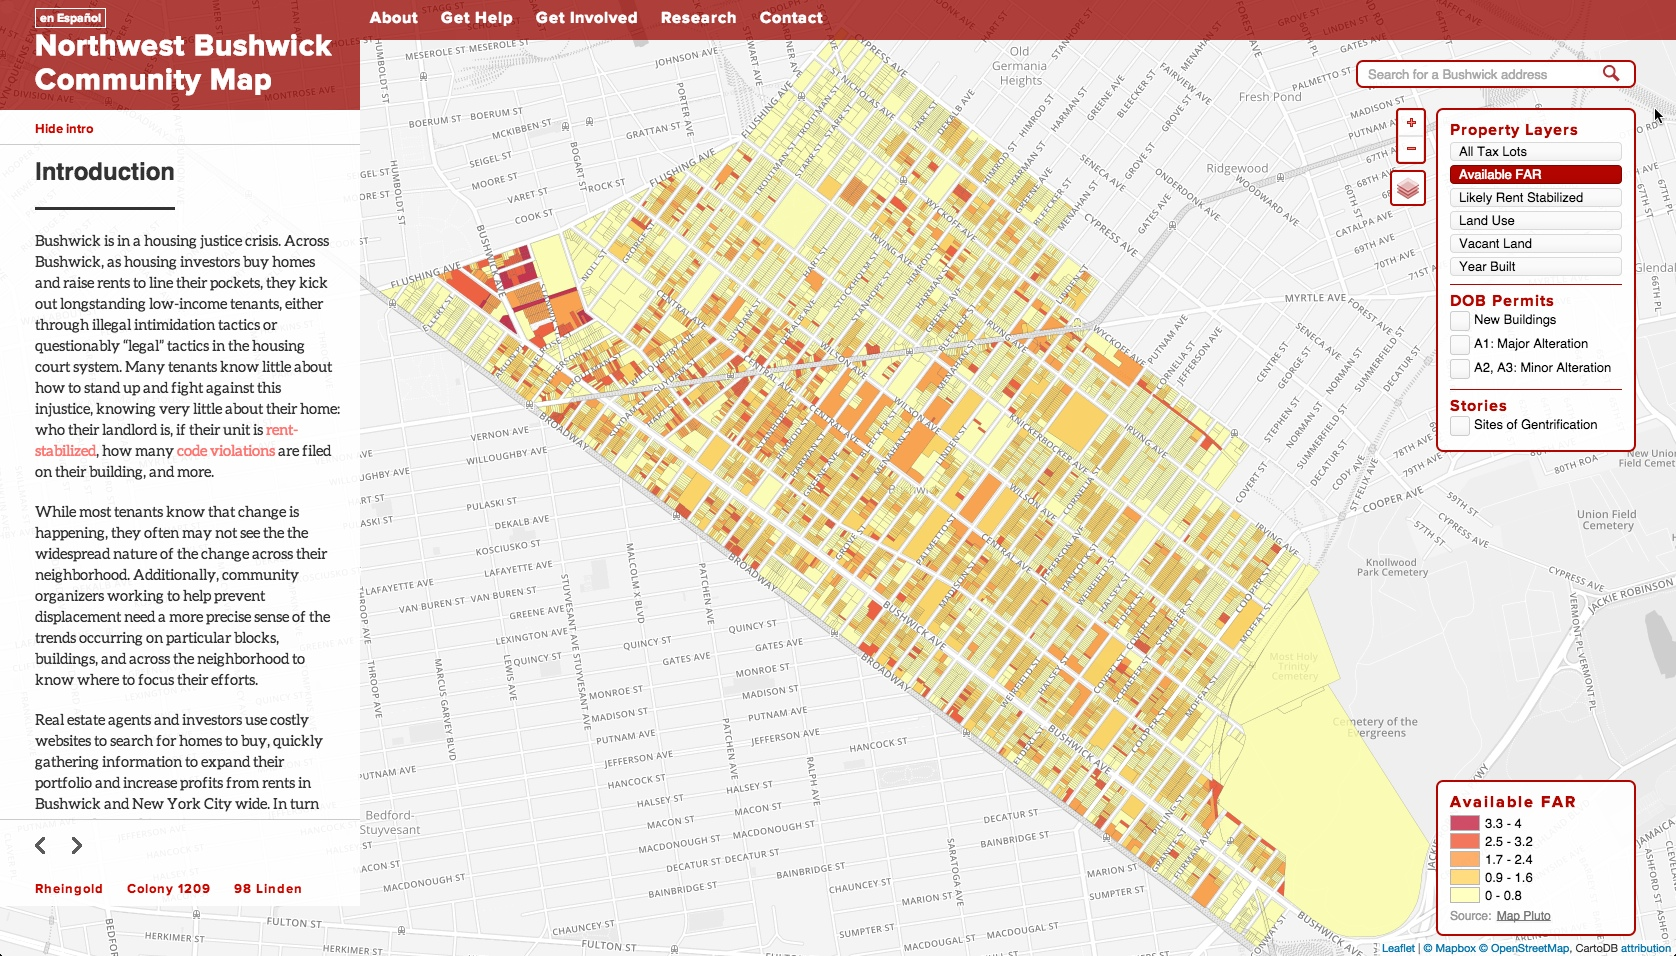 North West Bushwick Community Map redesign 2014